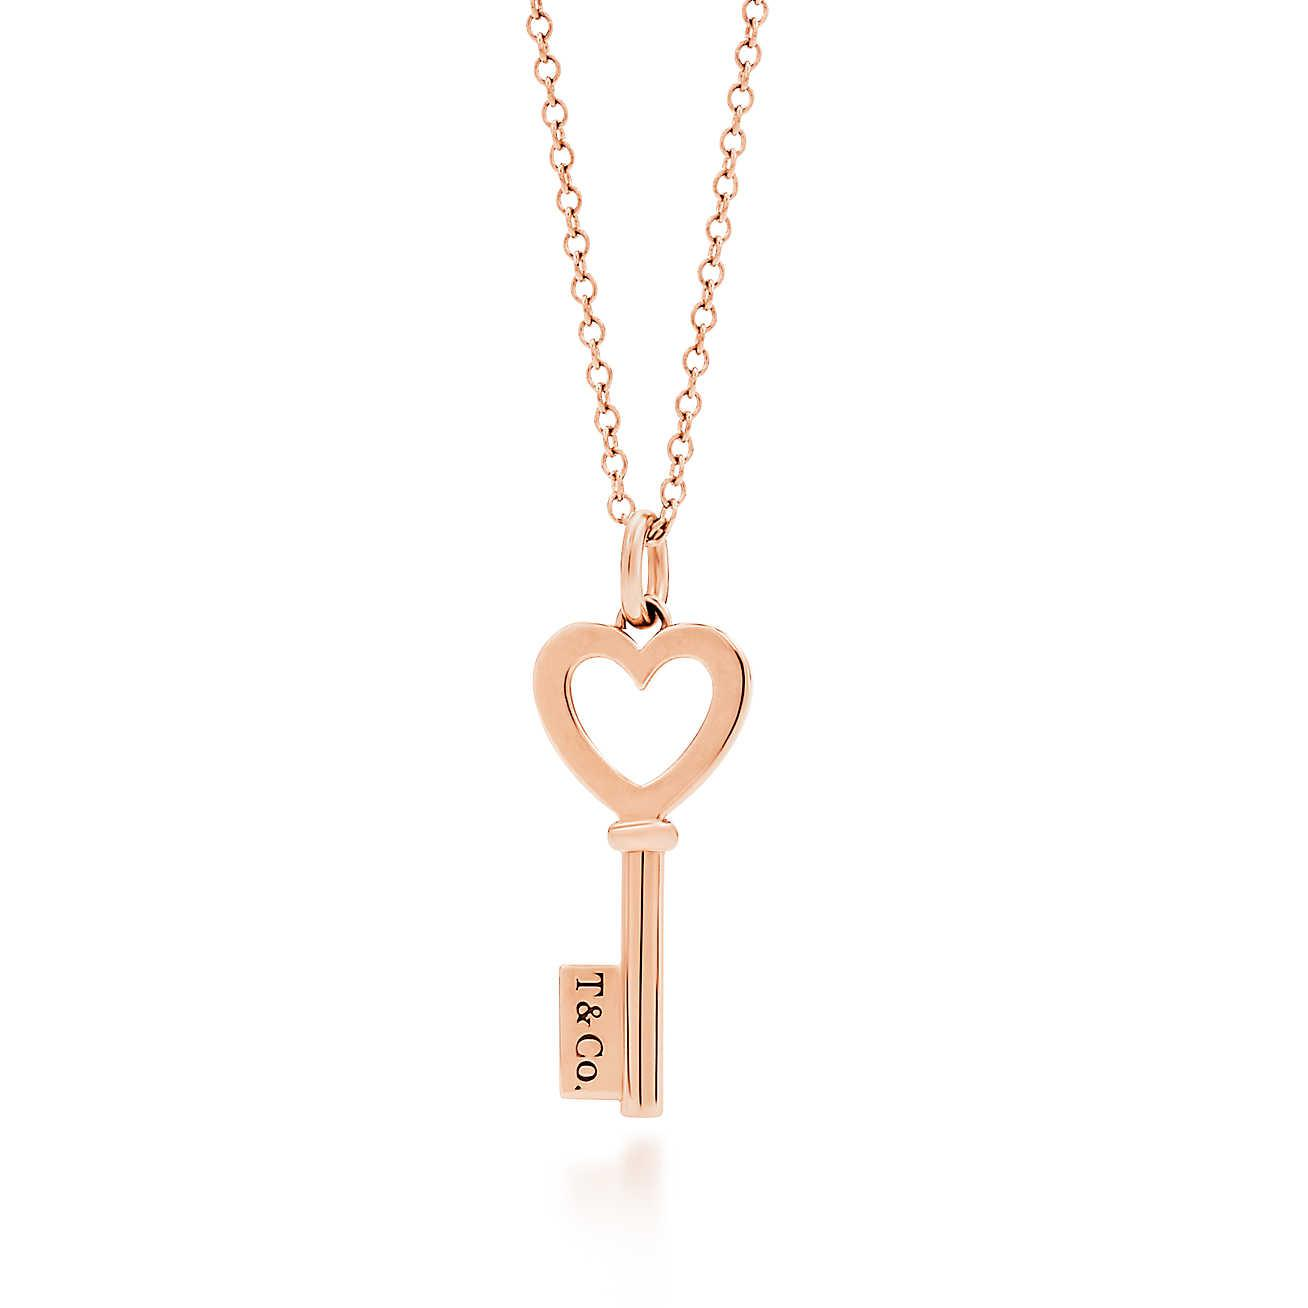 17add7d31 Tap to visit site. Tiffany & Co - Metallic Heart Key Pendant In 18k Rose  Gold ...